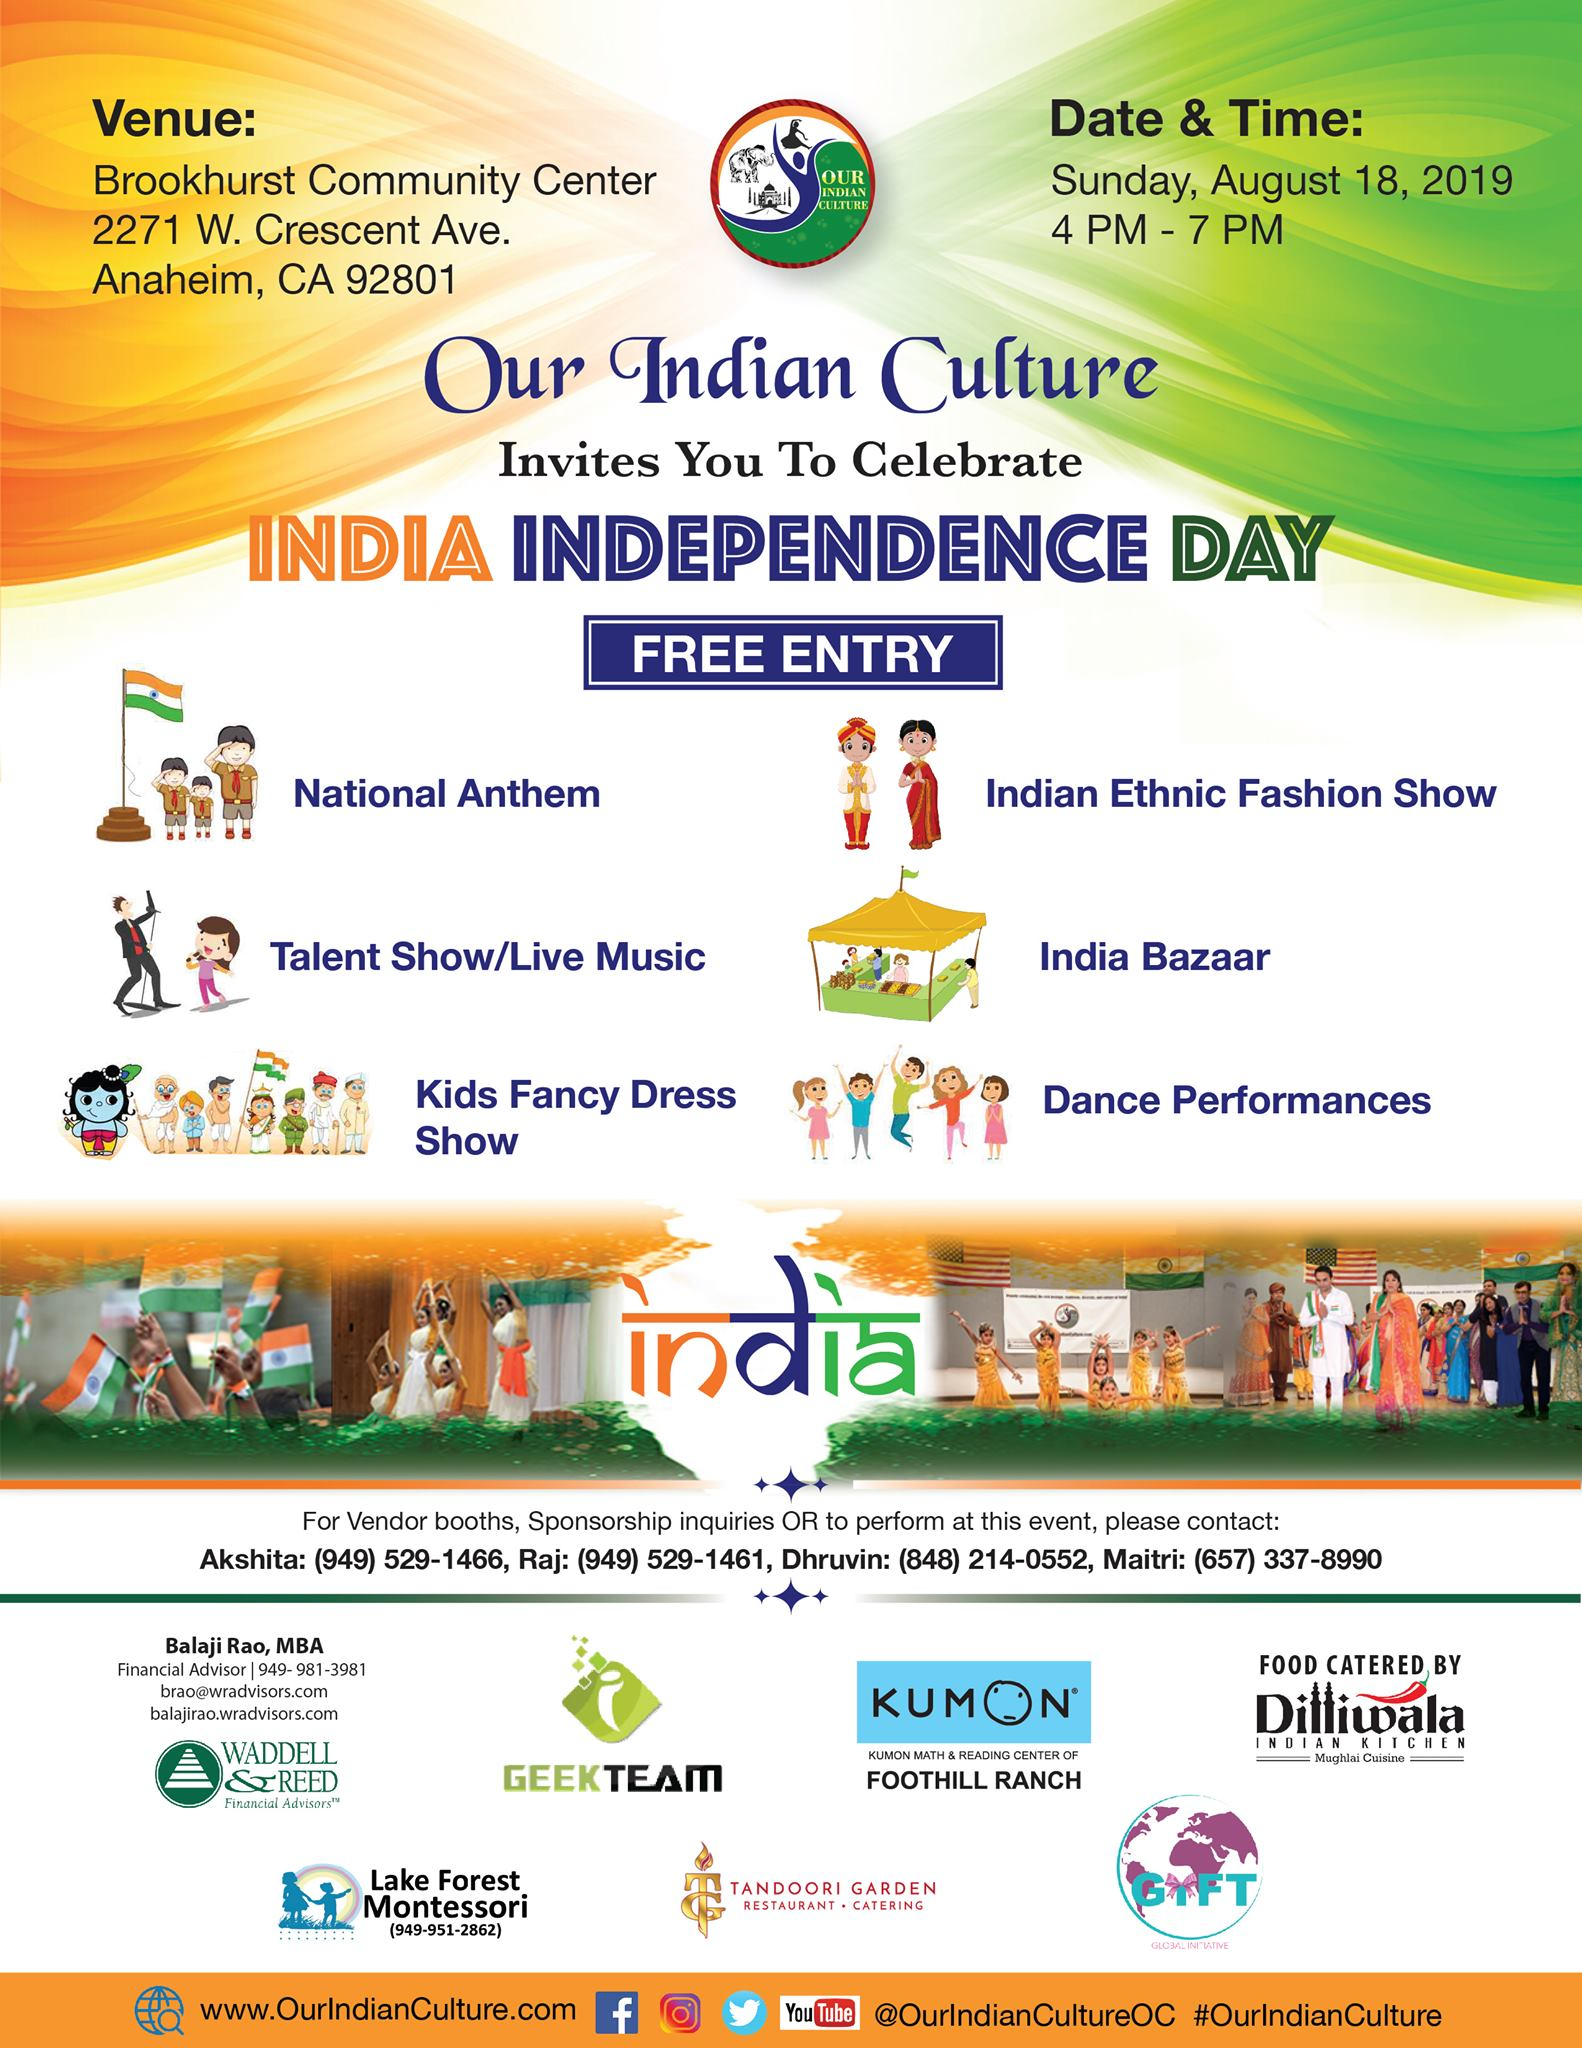 India Independence Day Celebration Event Anaheim August 18 2019